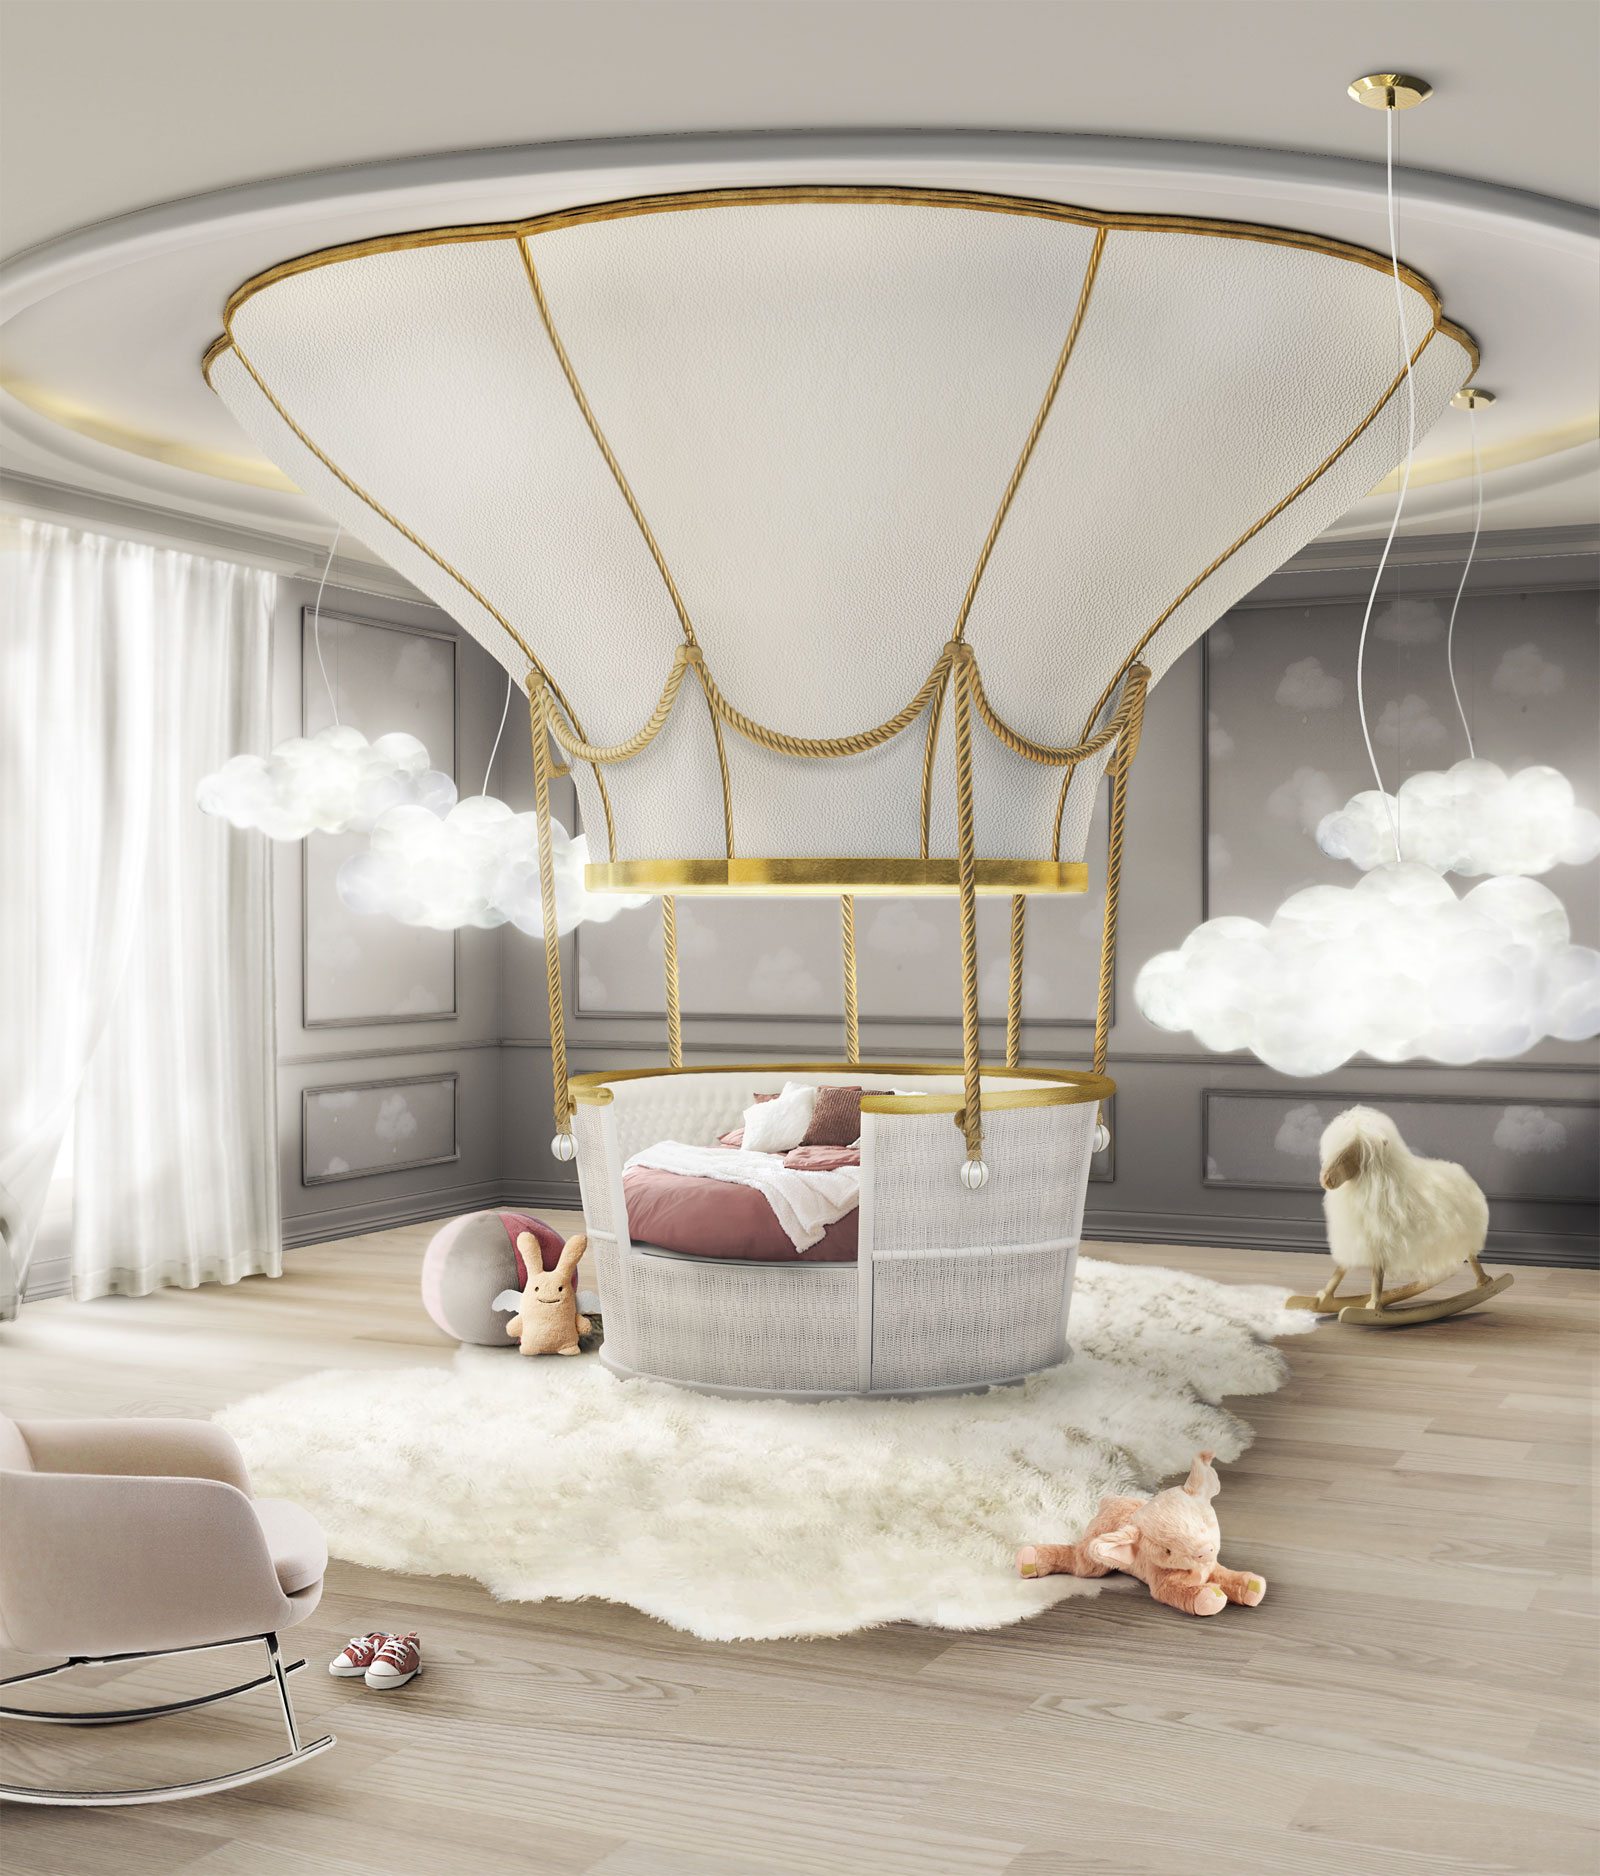 Three amazing beds for children that will make adults jealous for Cool kids bedroom designs